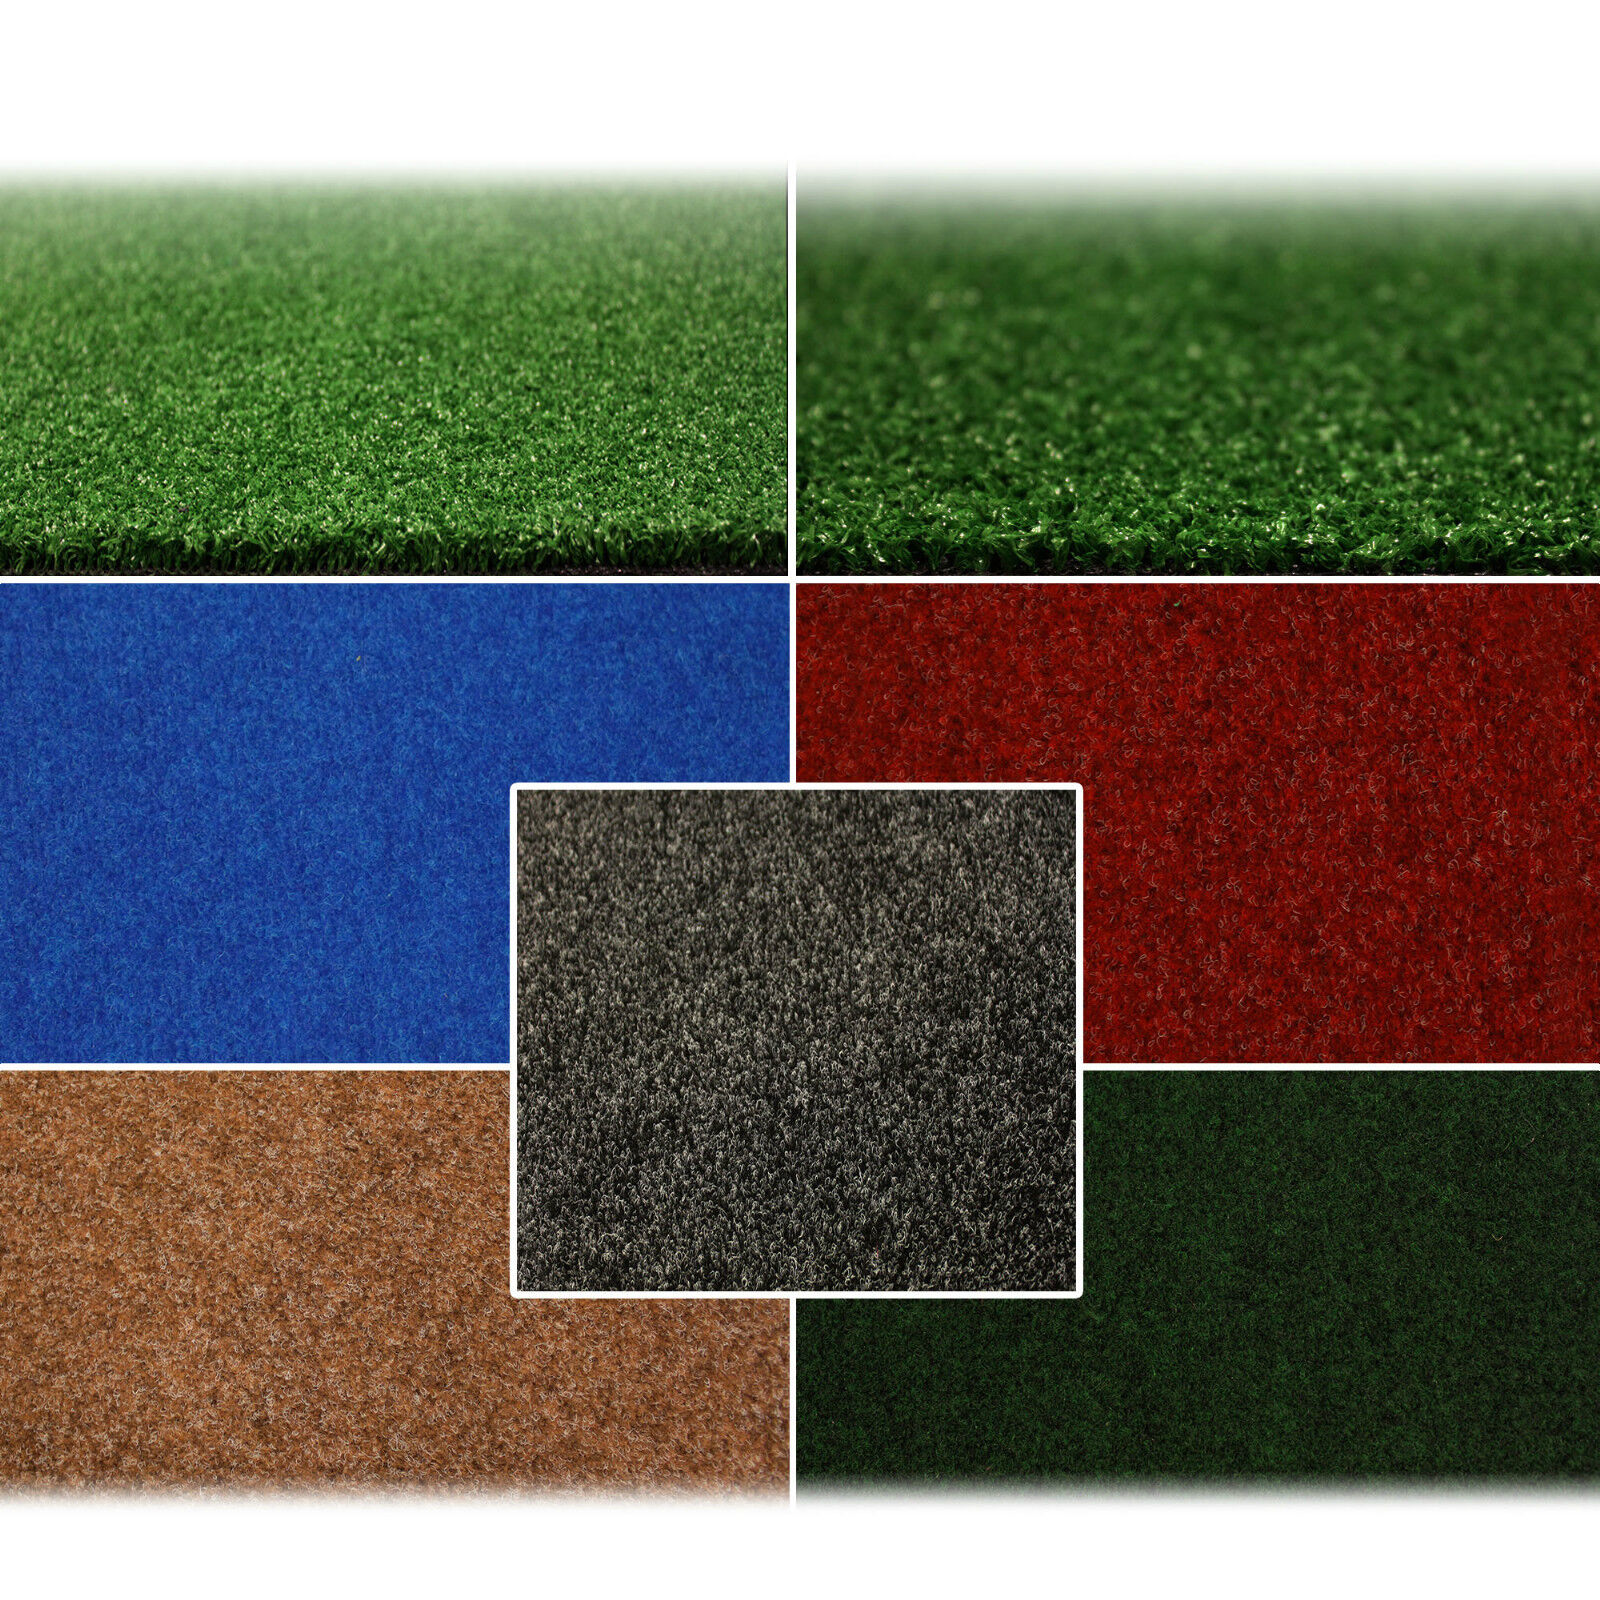 Outdoor Flooring Artificial Grass & Carpet Green Blue